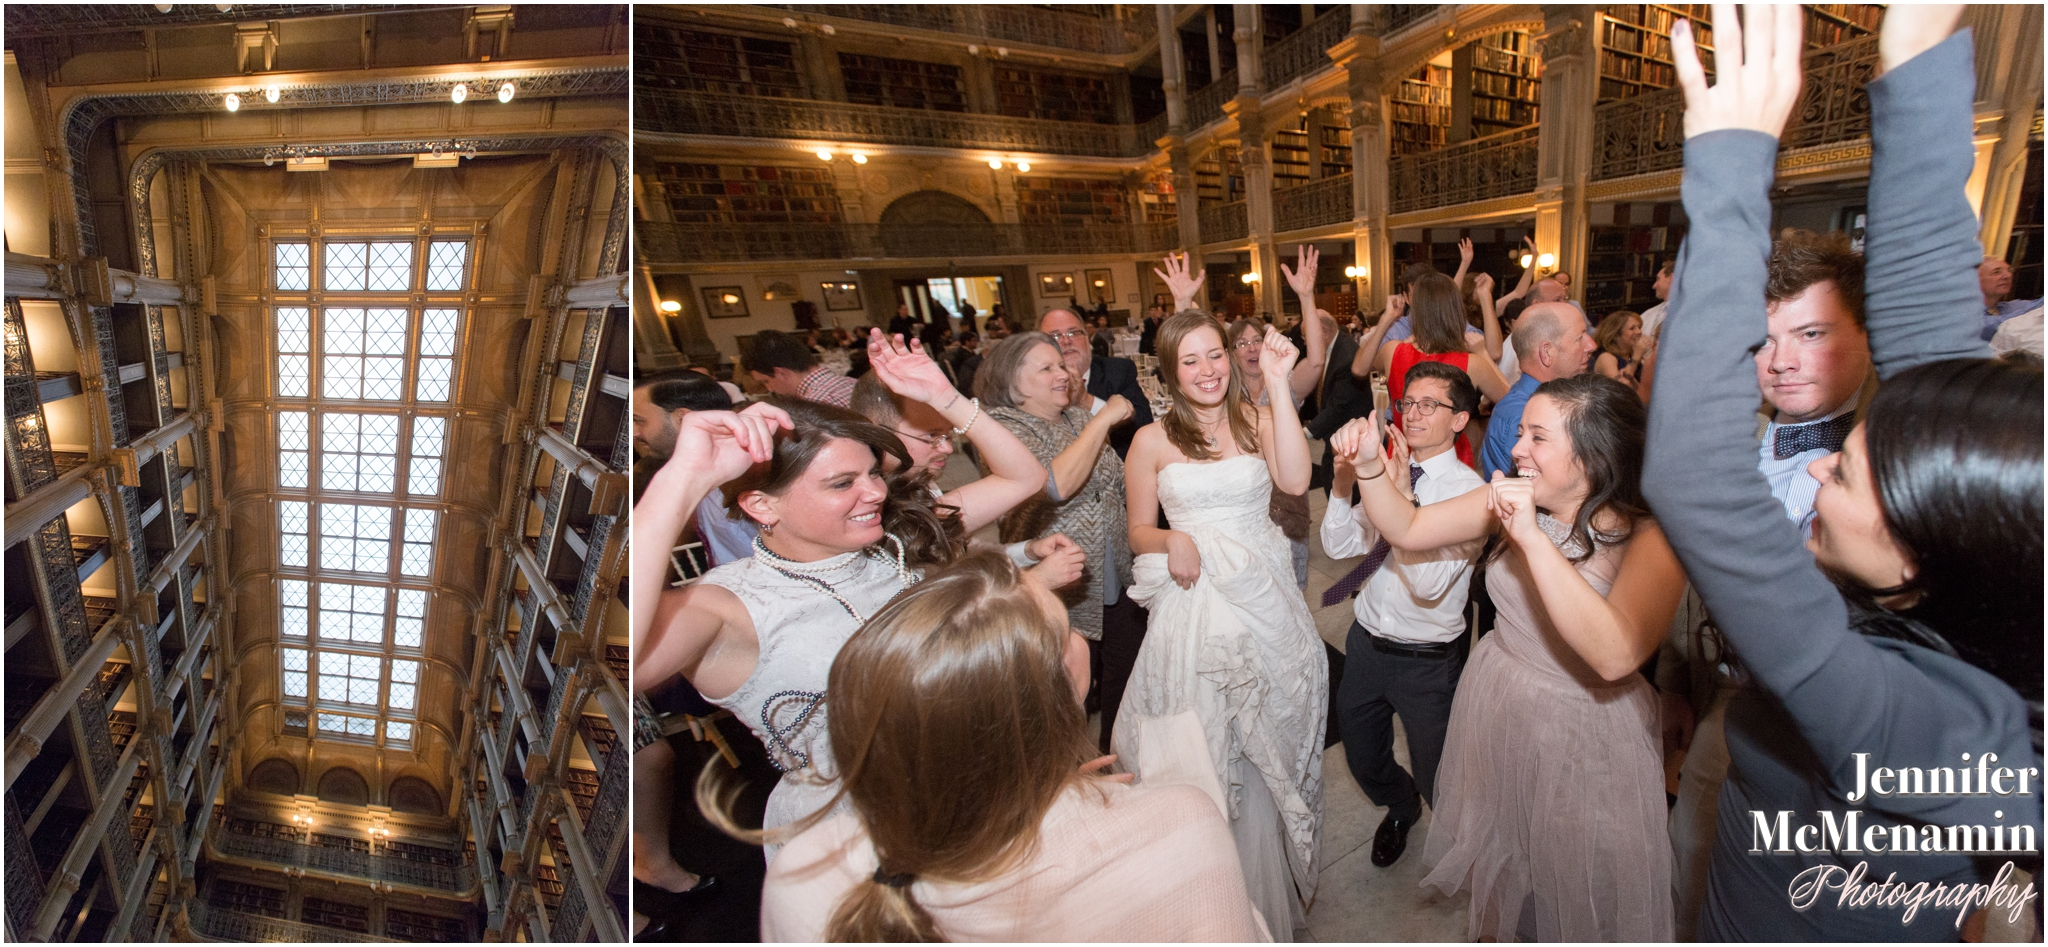 0114-WebbSlivnick_04319-0895_JenniferMcMenaminPhotography_George-Peabody-Library-wedding_Baltimore-wedding-photography_Baltimore-wedding-photographer